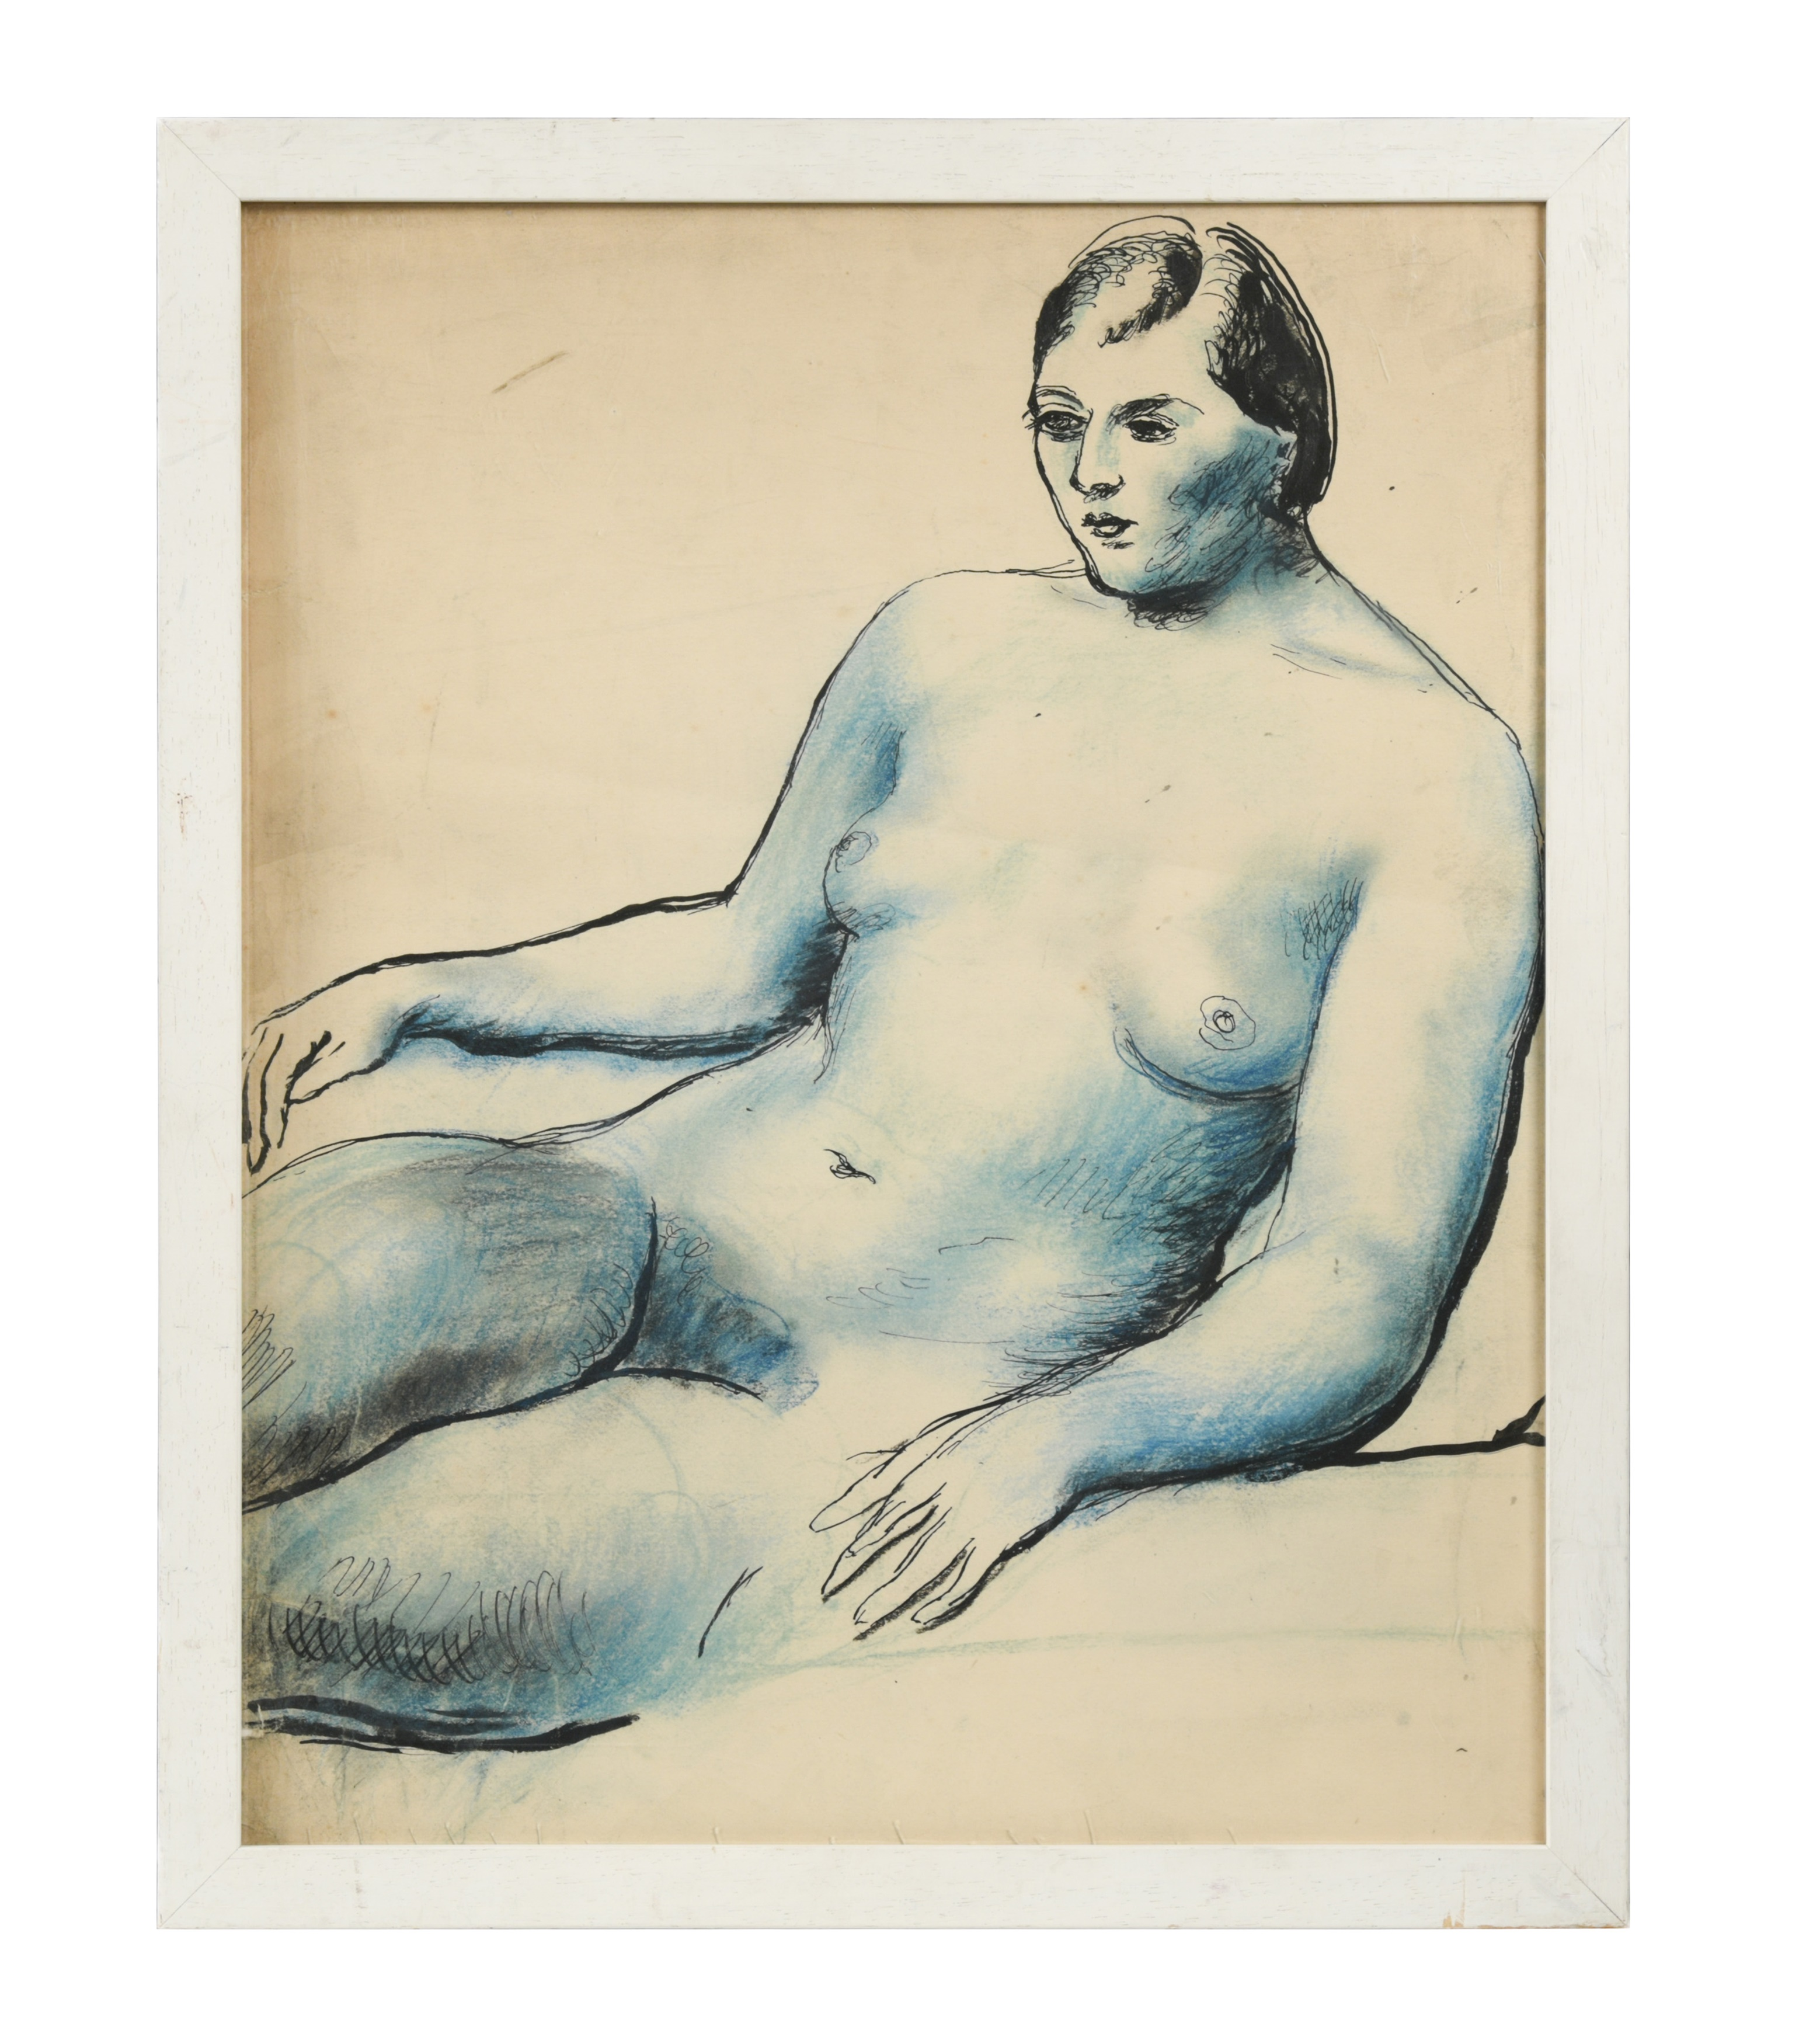 § Two 20th century nude studies to include: